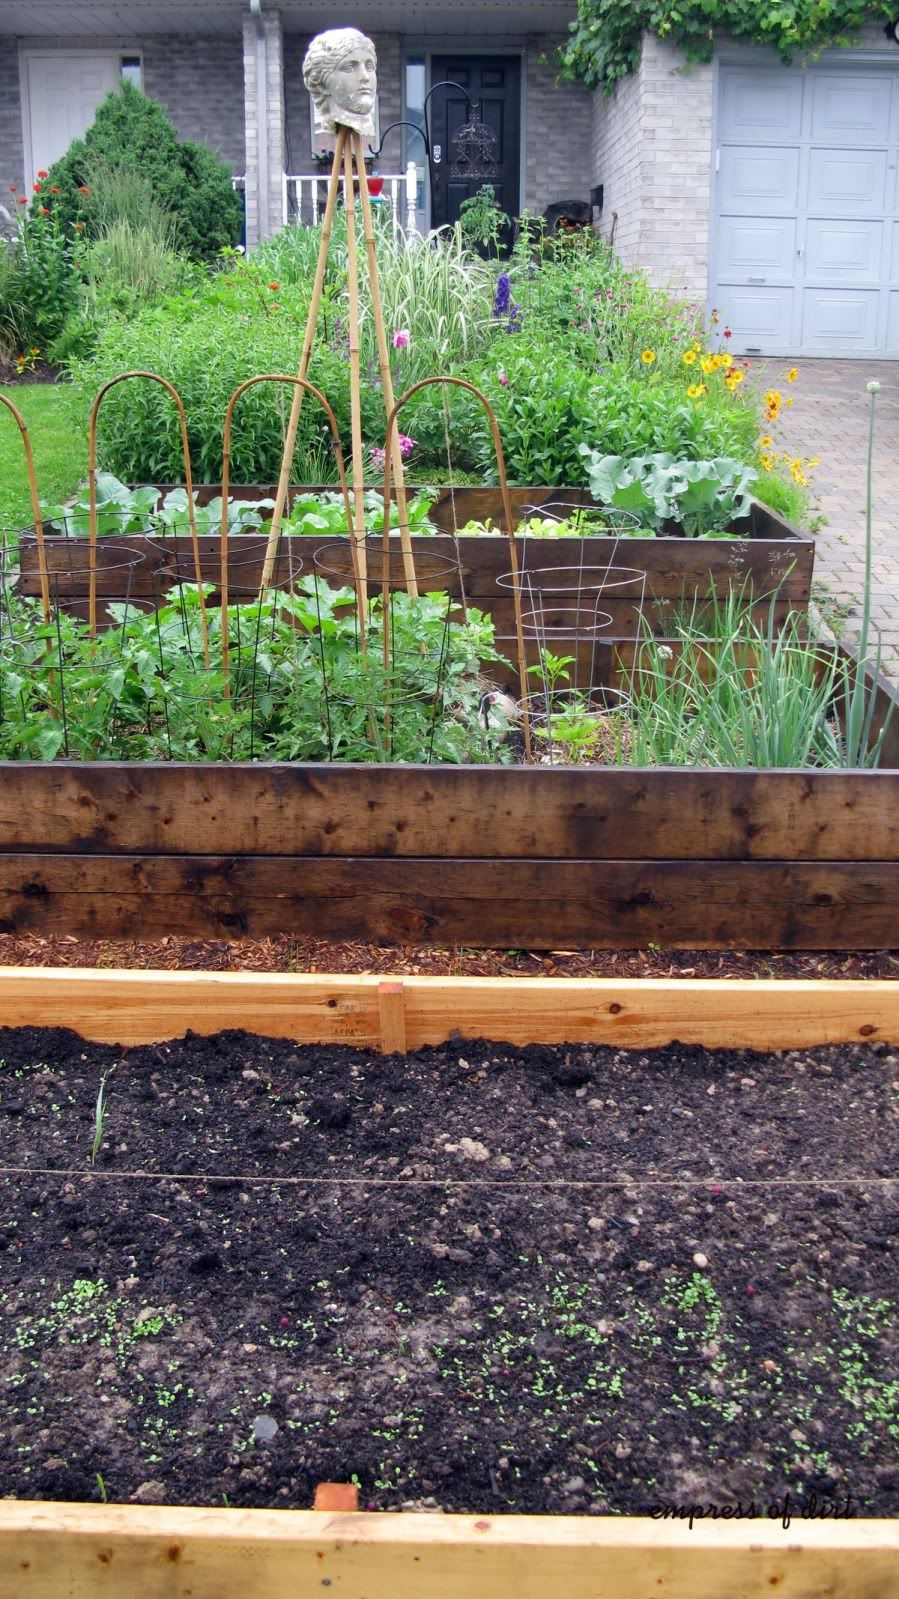 Raised vegetable garden beds in the front yard.